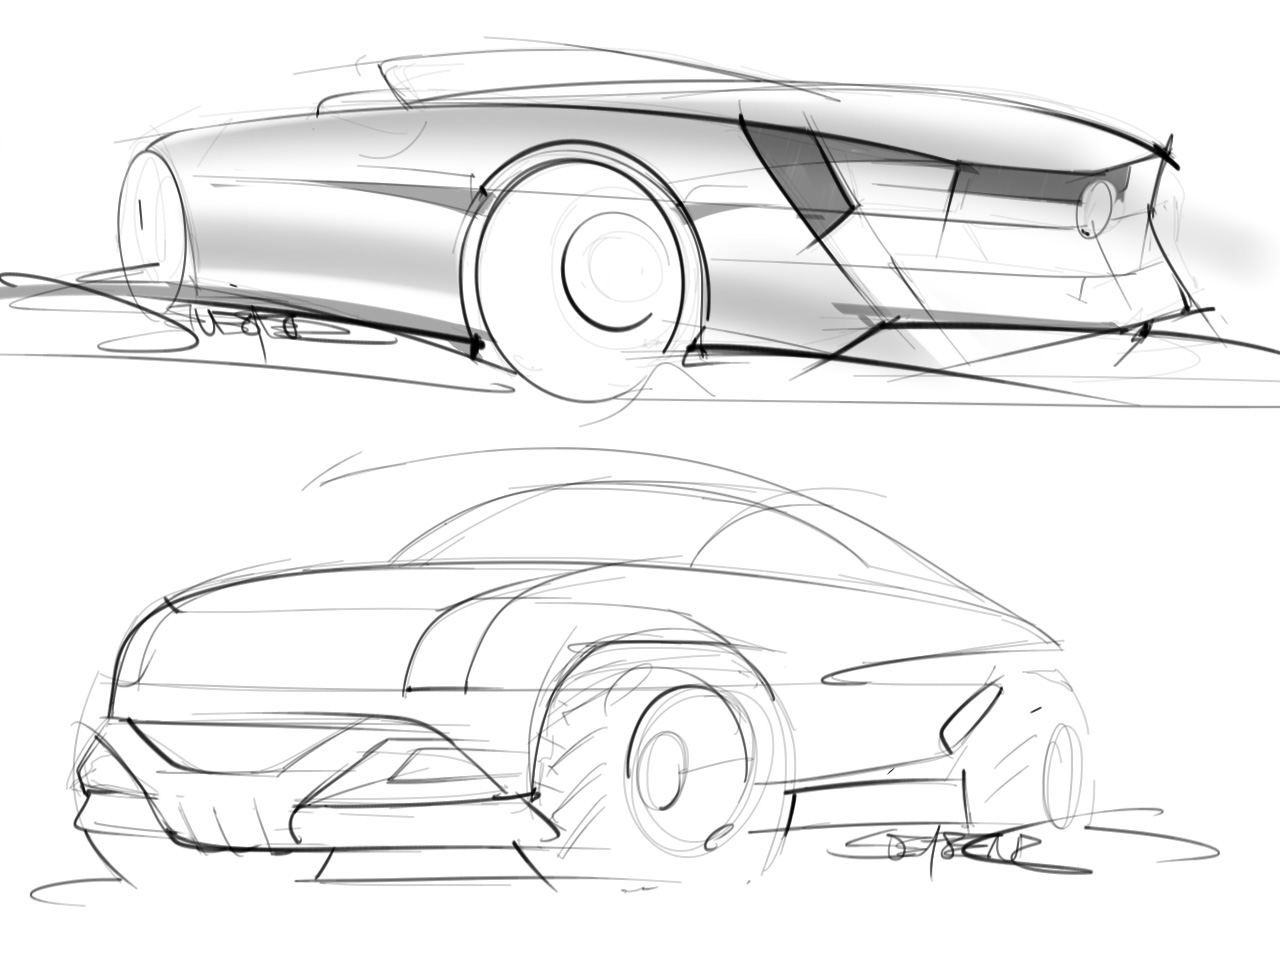 Still drawing at least one car sketch a day – ScottDesigner